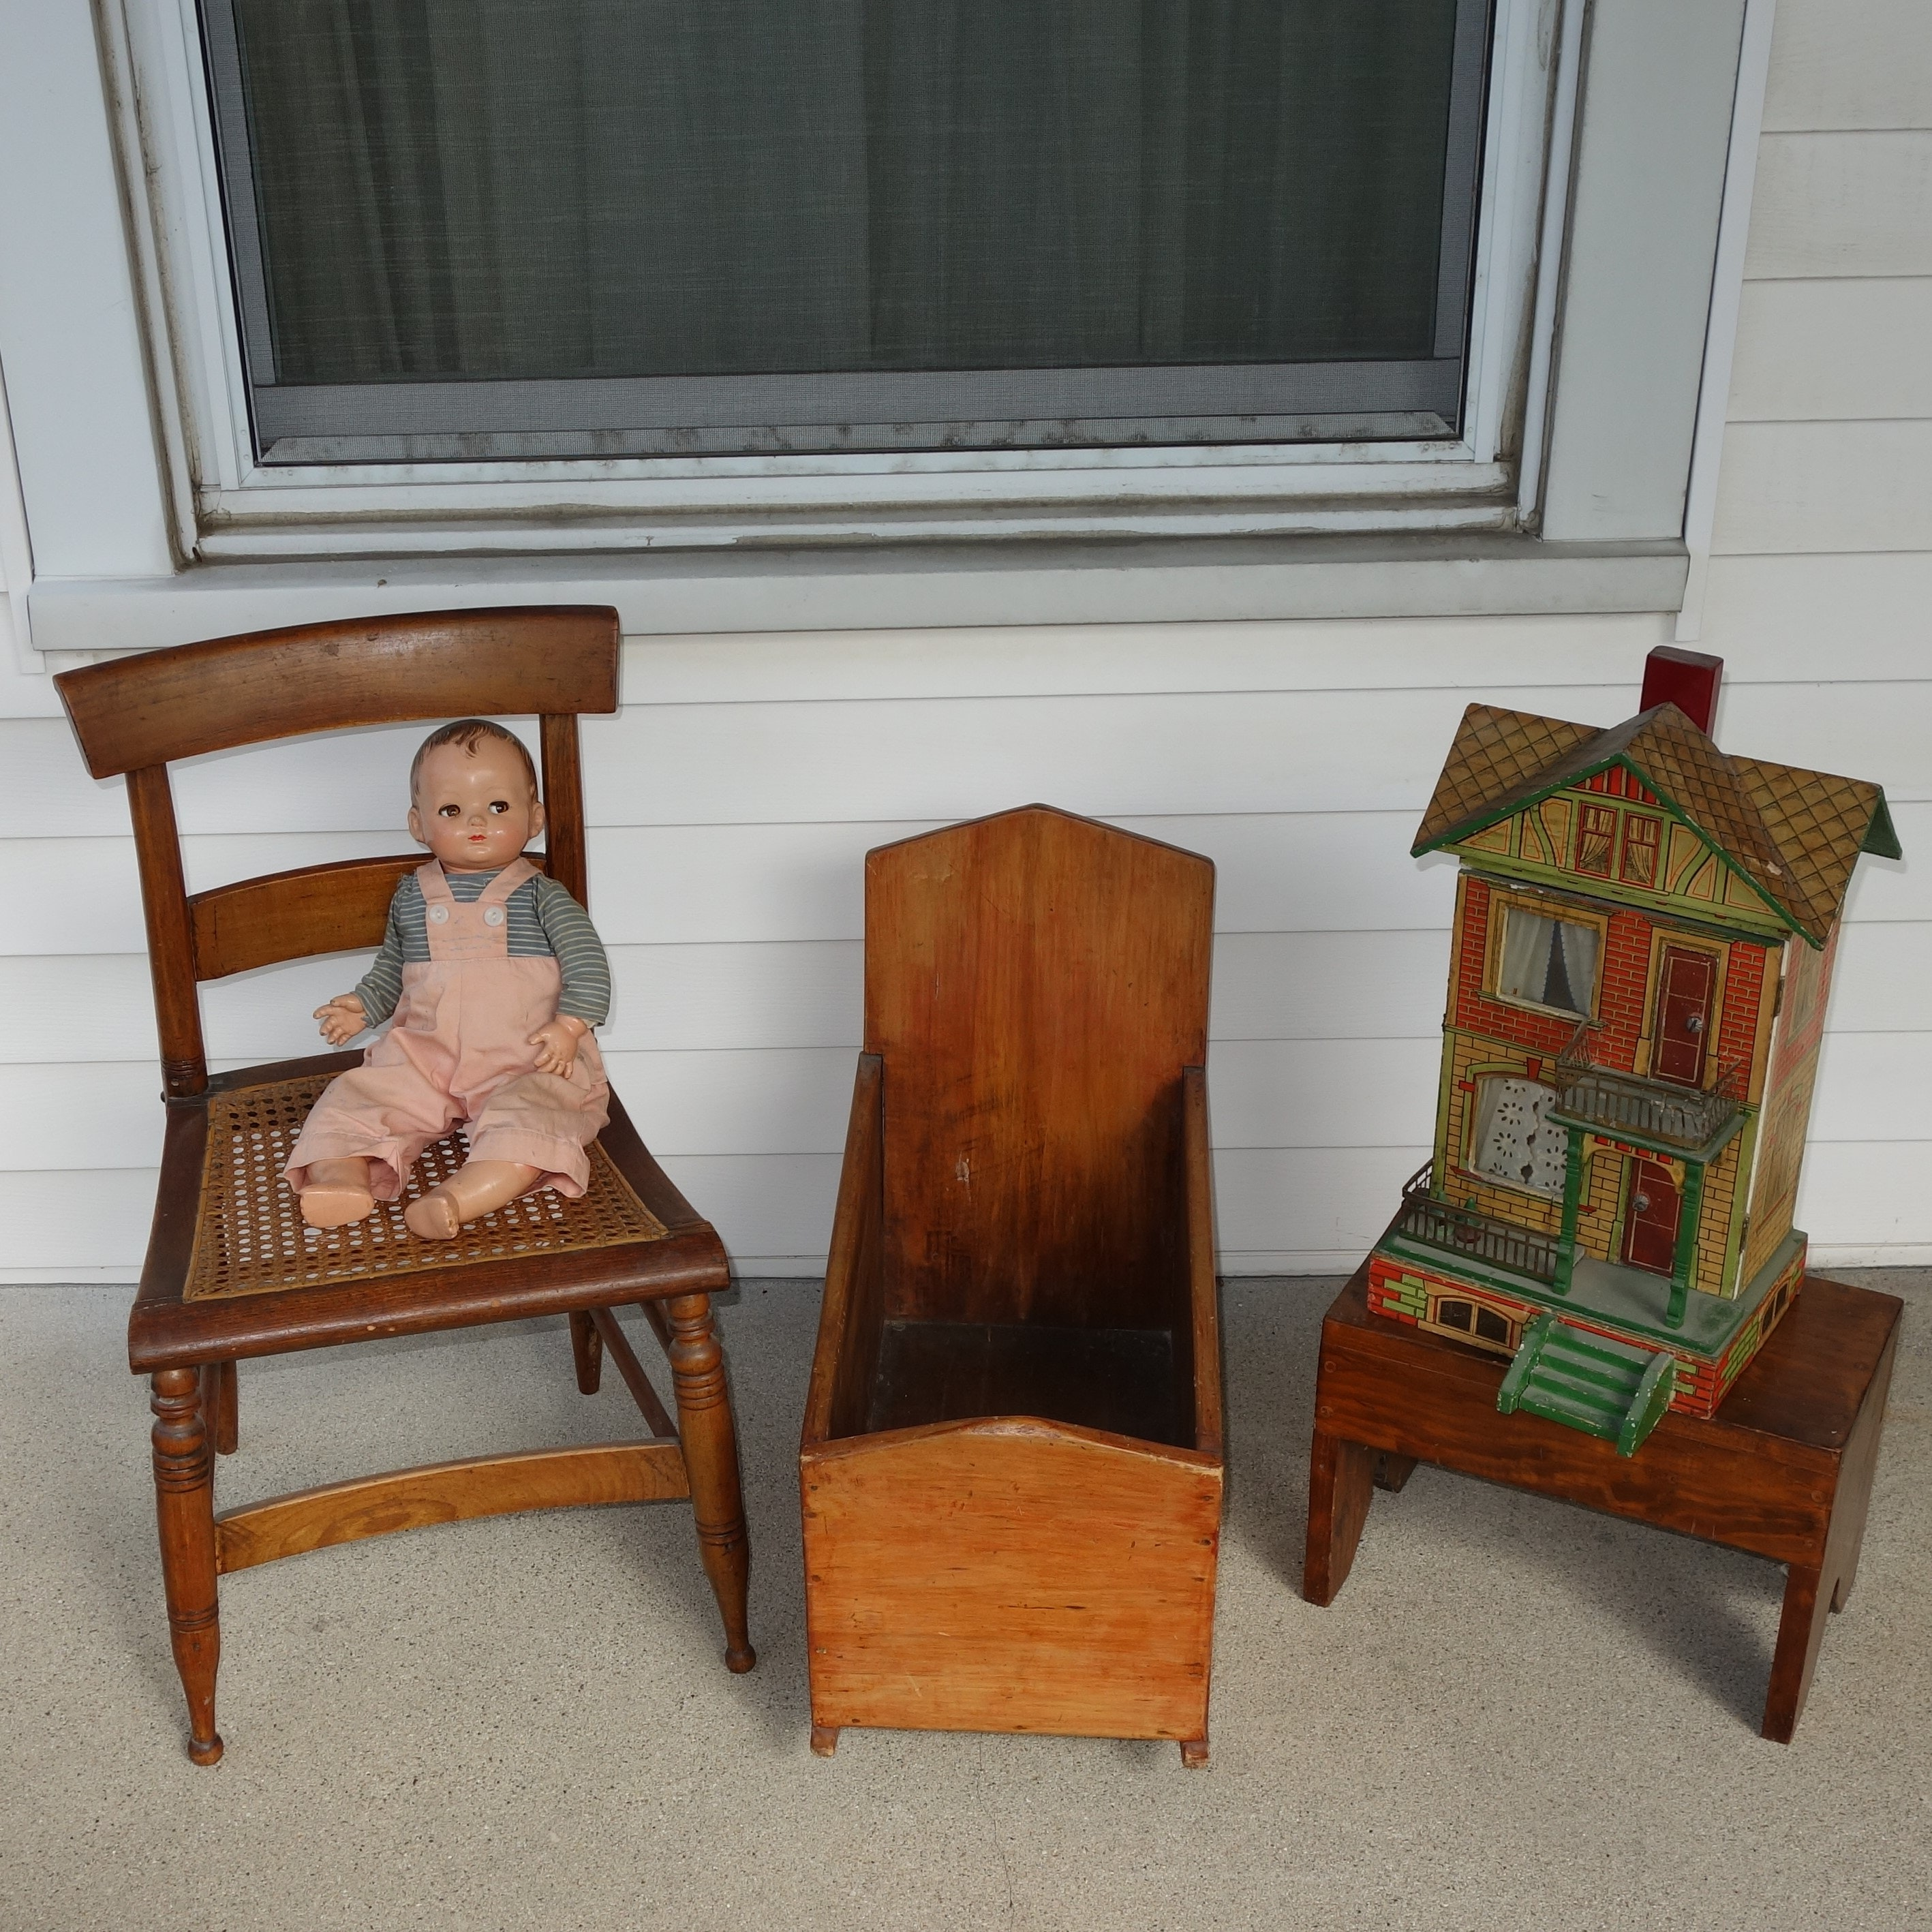 Child's Chair and Baby Doll Furniture